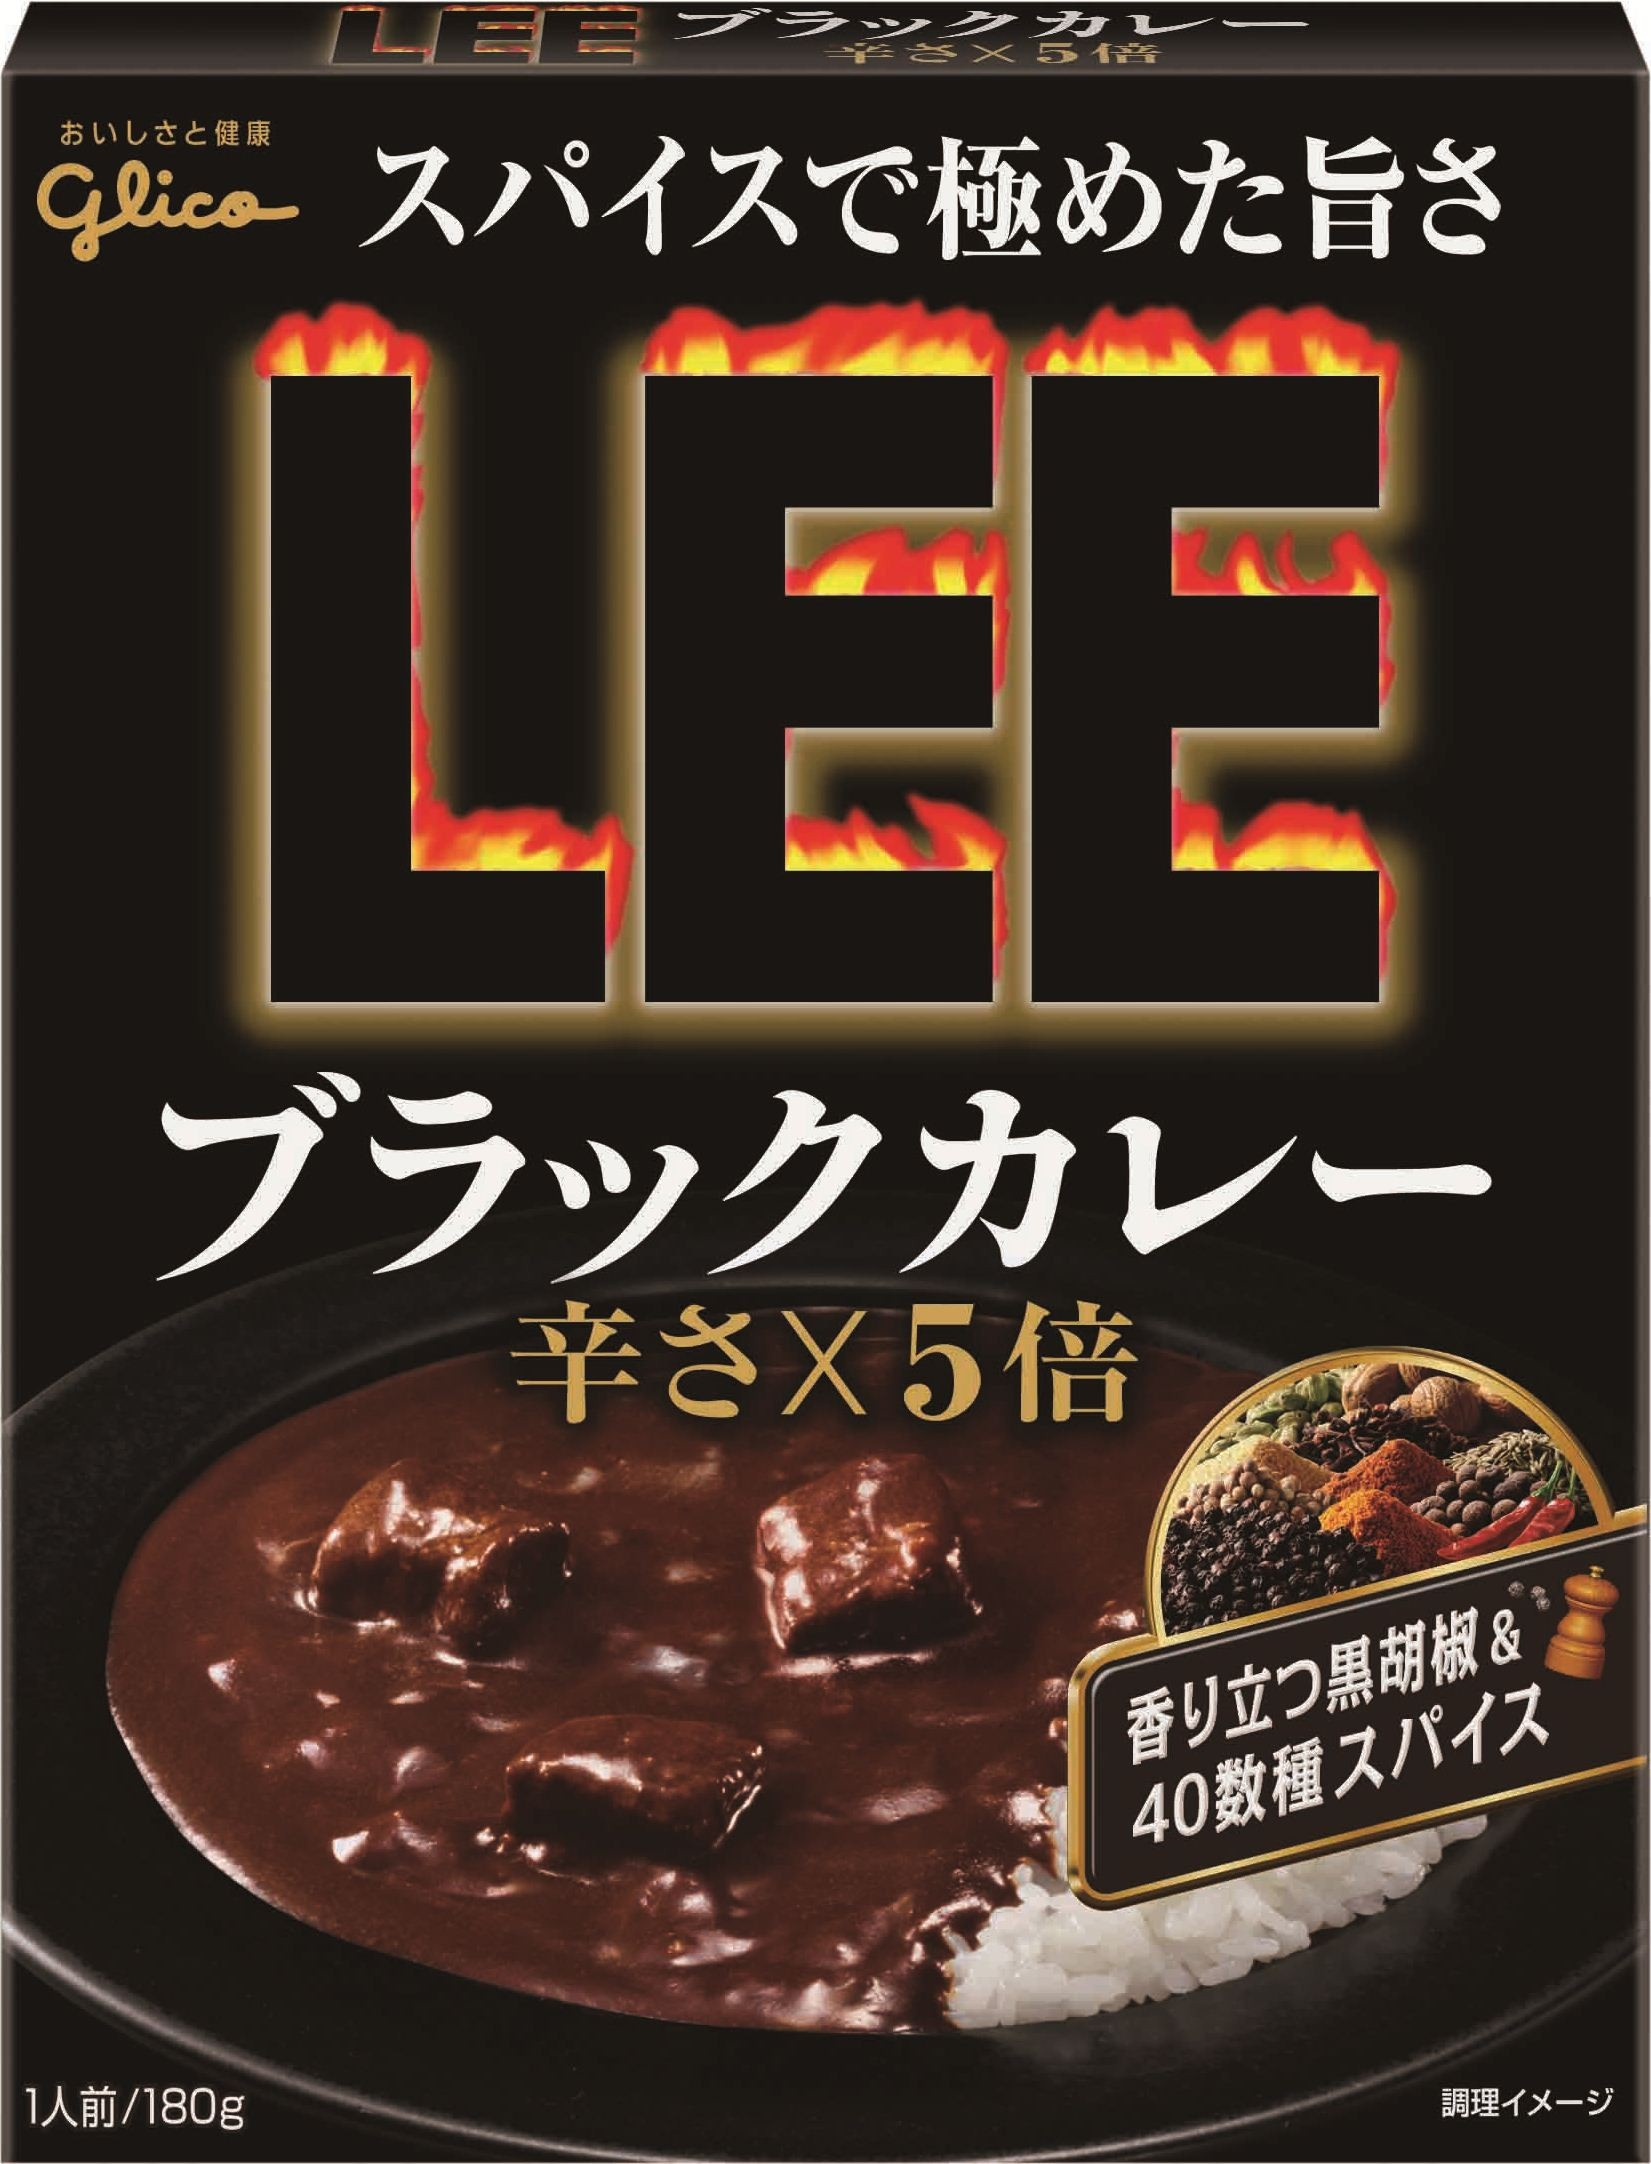 https://www.glico.com/assets/images/large/LEE%E3%83%96%E3%83%A9%E3%83%83%E3%82%AF%E8%BE%9B%E3%81%955%E5%80%8D__1.jpg